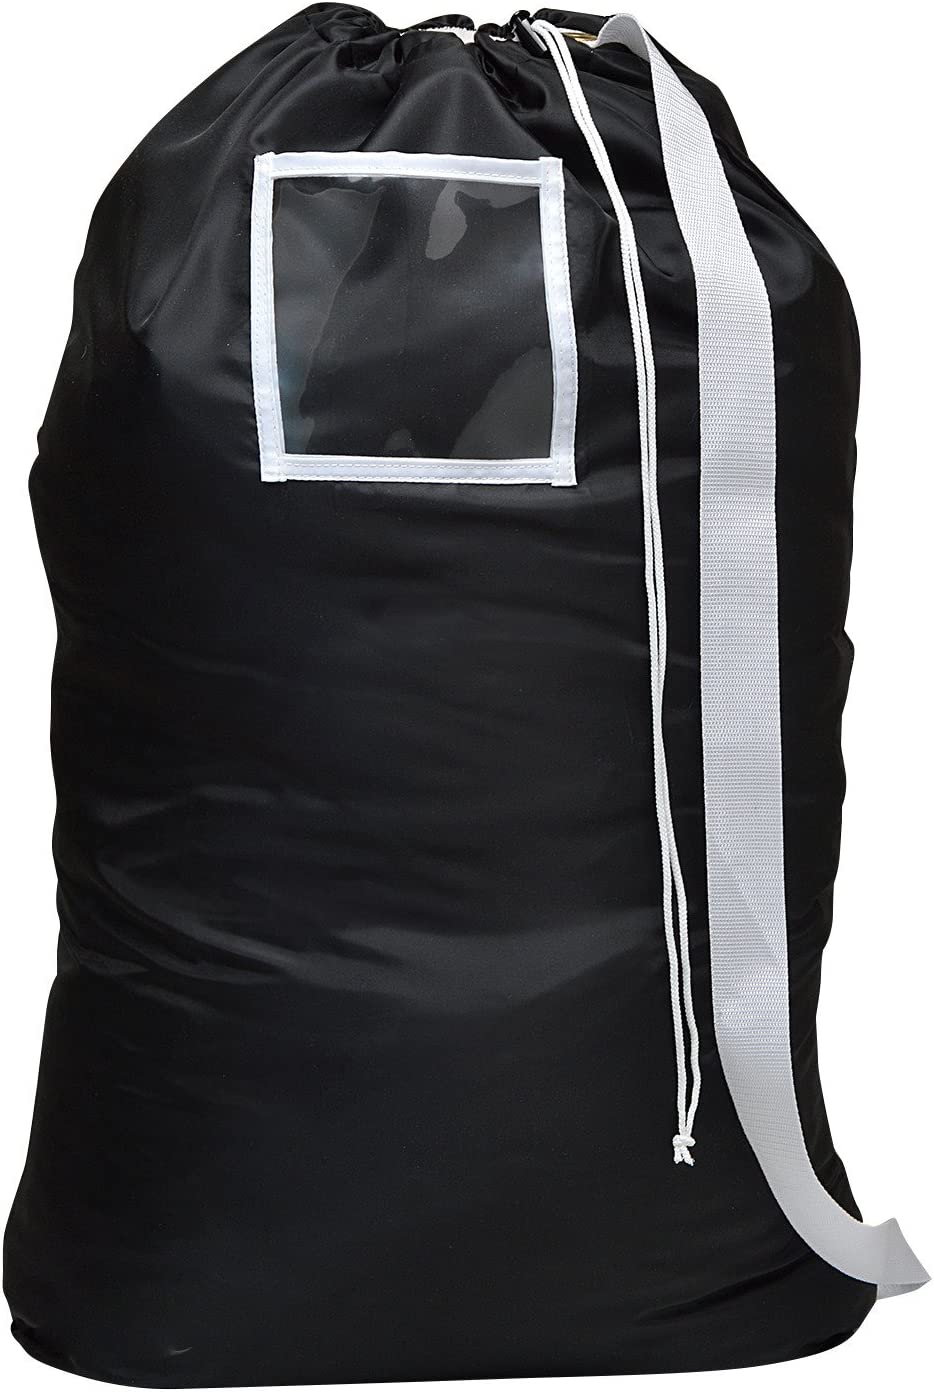 Carry Laundry Bag From Handy Laundry with Shoulder Strap, Large Size 24 Inches X 36 Inches, Commercial Grade 100% Nylon and Made in the USA - Designed for Heavy Duty Use - College Laundry Bag - Trips to Laundromat - Household Storage (Black)